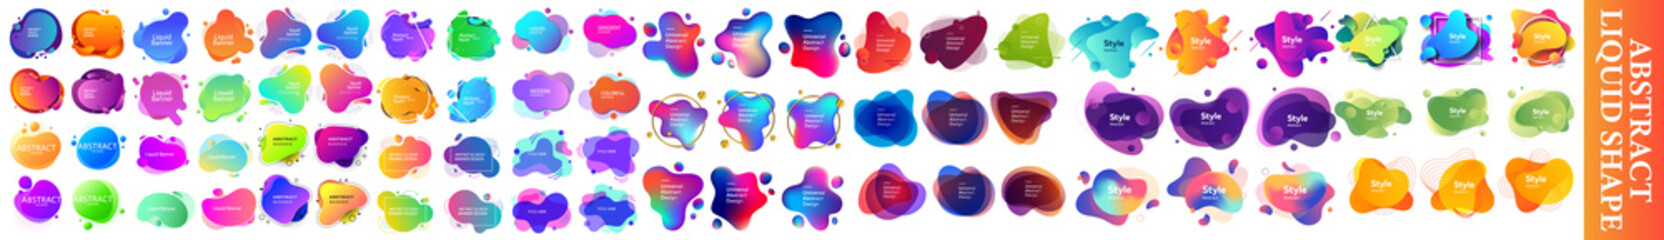 Set of Liquid Gradient Shapes and Banners. abstract liquid shape, Set of modern abstract liquid shapes and banners. graphic design elements. Vector illustrations for logo design,bright colorful paint